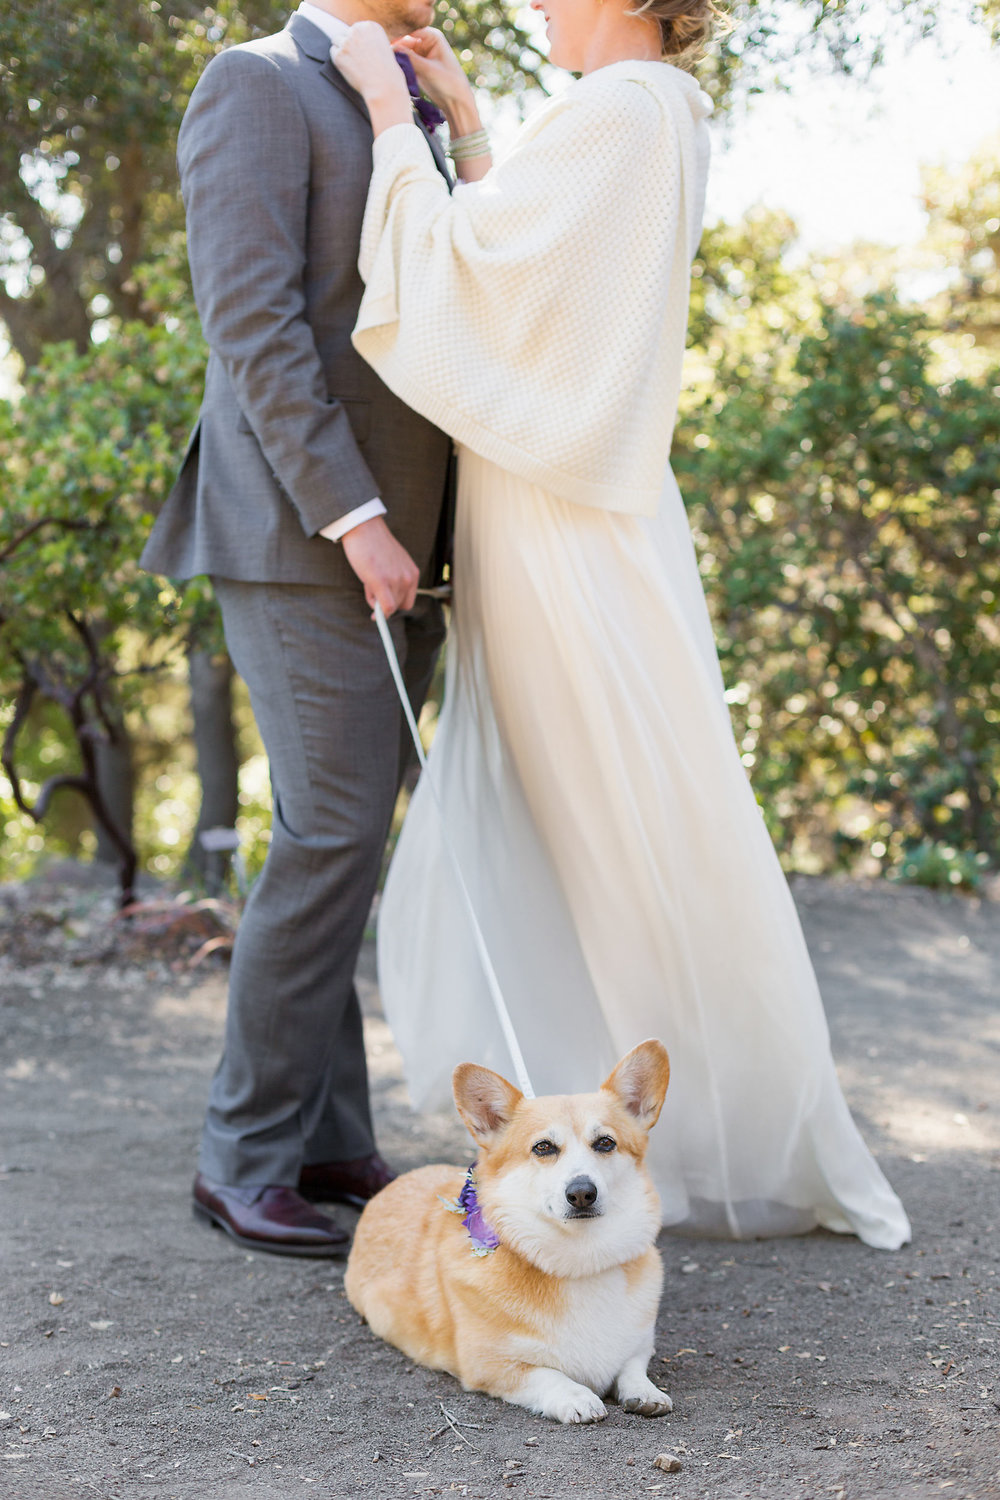 Absolutely exceptional. Kristen has been professional, approachable, and produced the best photos I've ever seen of me and my dog. We've done two sessions now - engagement shoot and Veils and Tails (bride and dog) shoot - and I cannot wait for her to photograph my wedding day. I wouldn't trust anyone else to document the occasion. Looking for a photographer for anything? Look no further. - ~ Kate D.